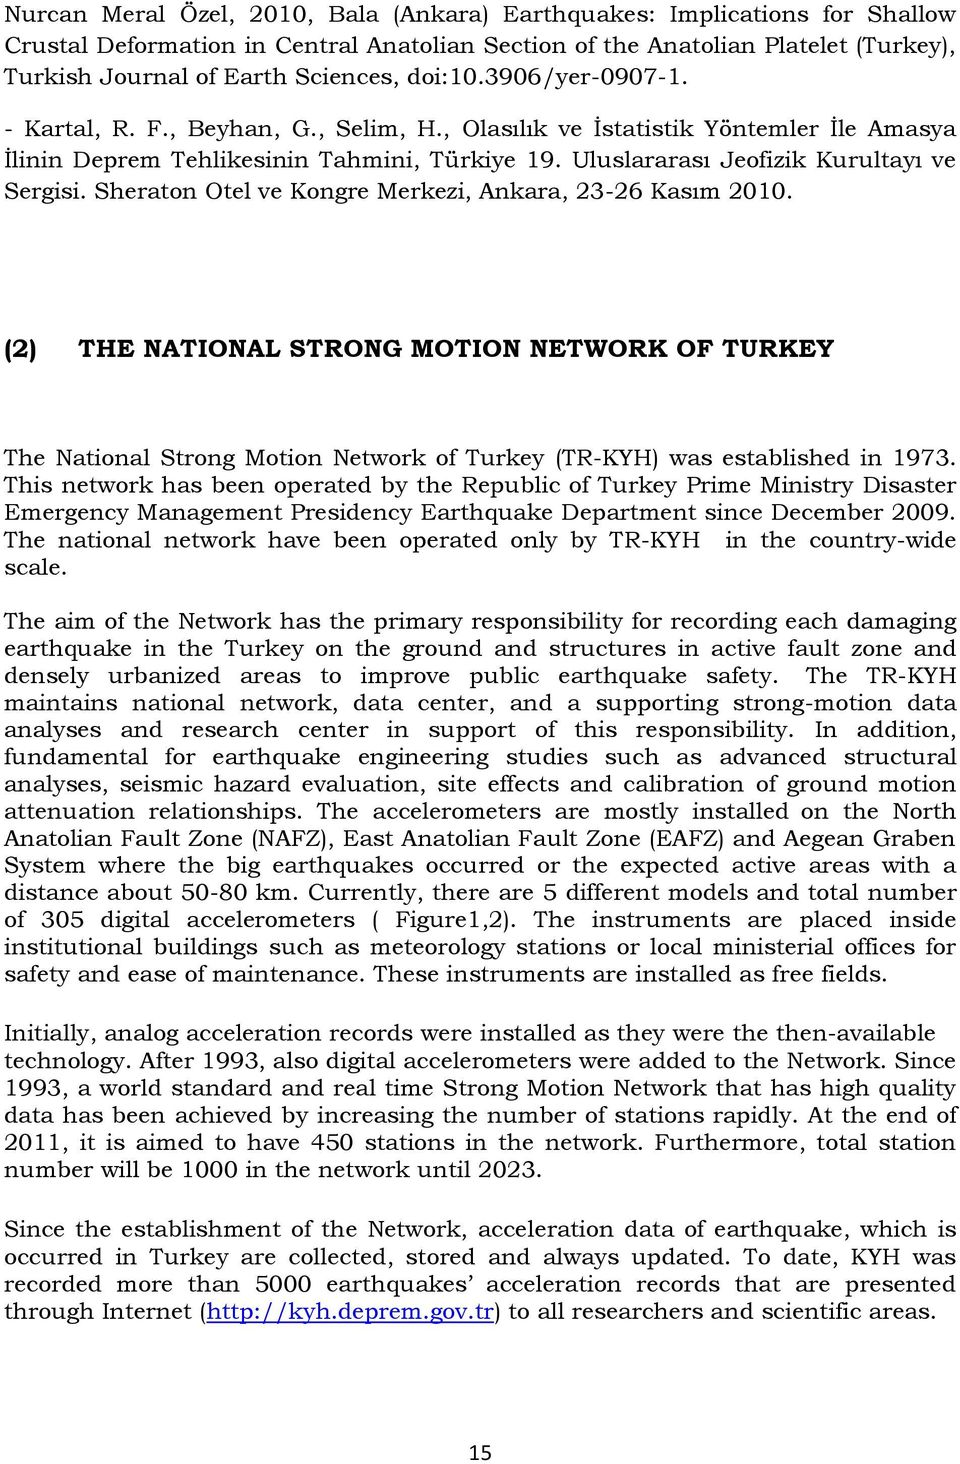 Sheraton Otel ve Kongre Merkezi, Ankara, 23-26 Kasım 2010. (2) THE NATIONAL STRONG MOTION NETWORK OF TURKEY The National Strong Motion Network of Turkey (TR-KYH) was established in 1973.